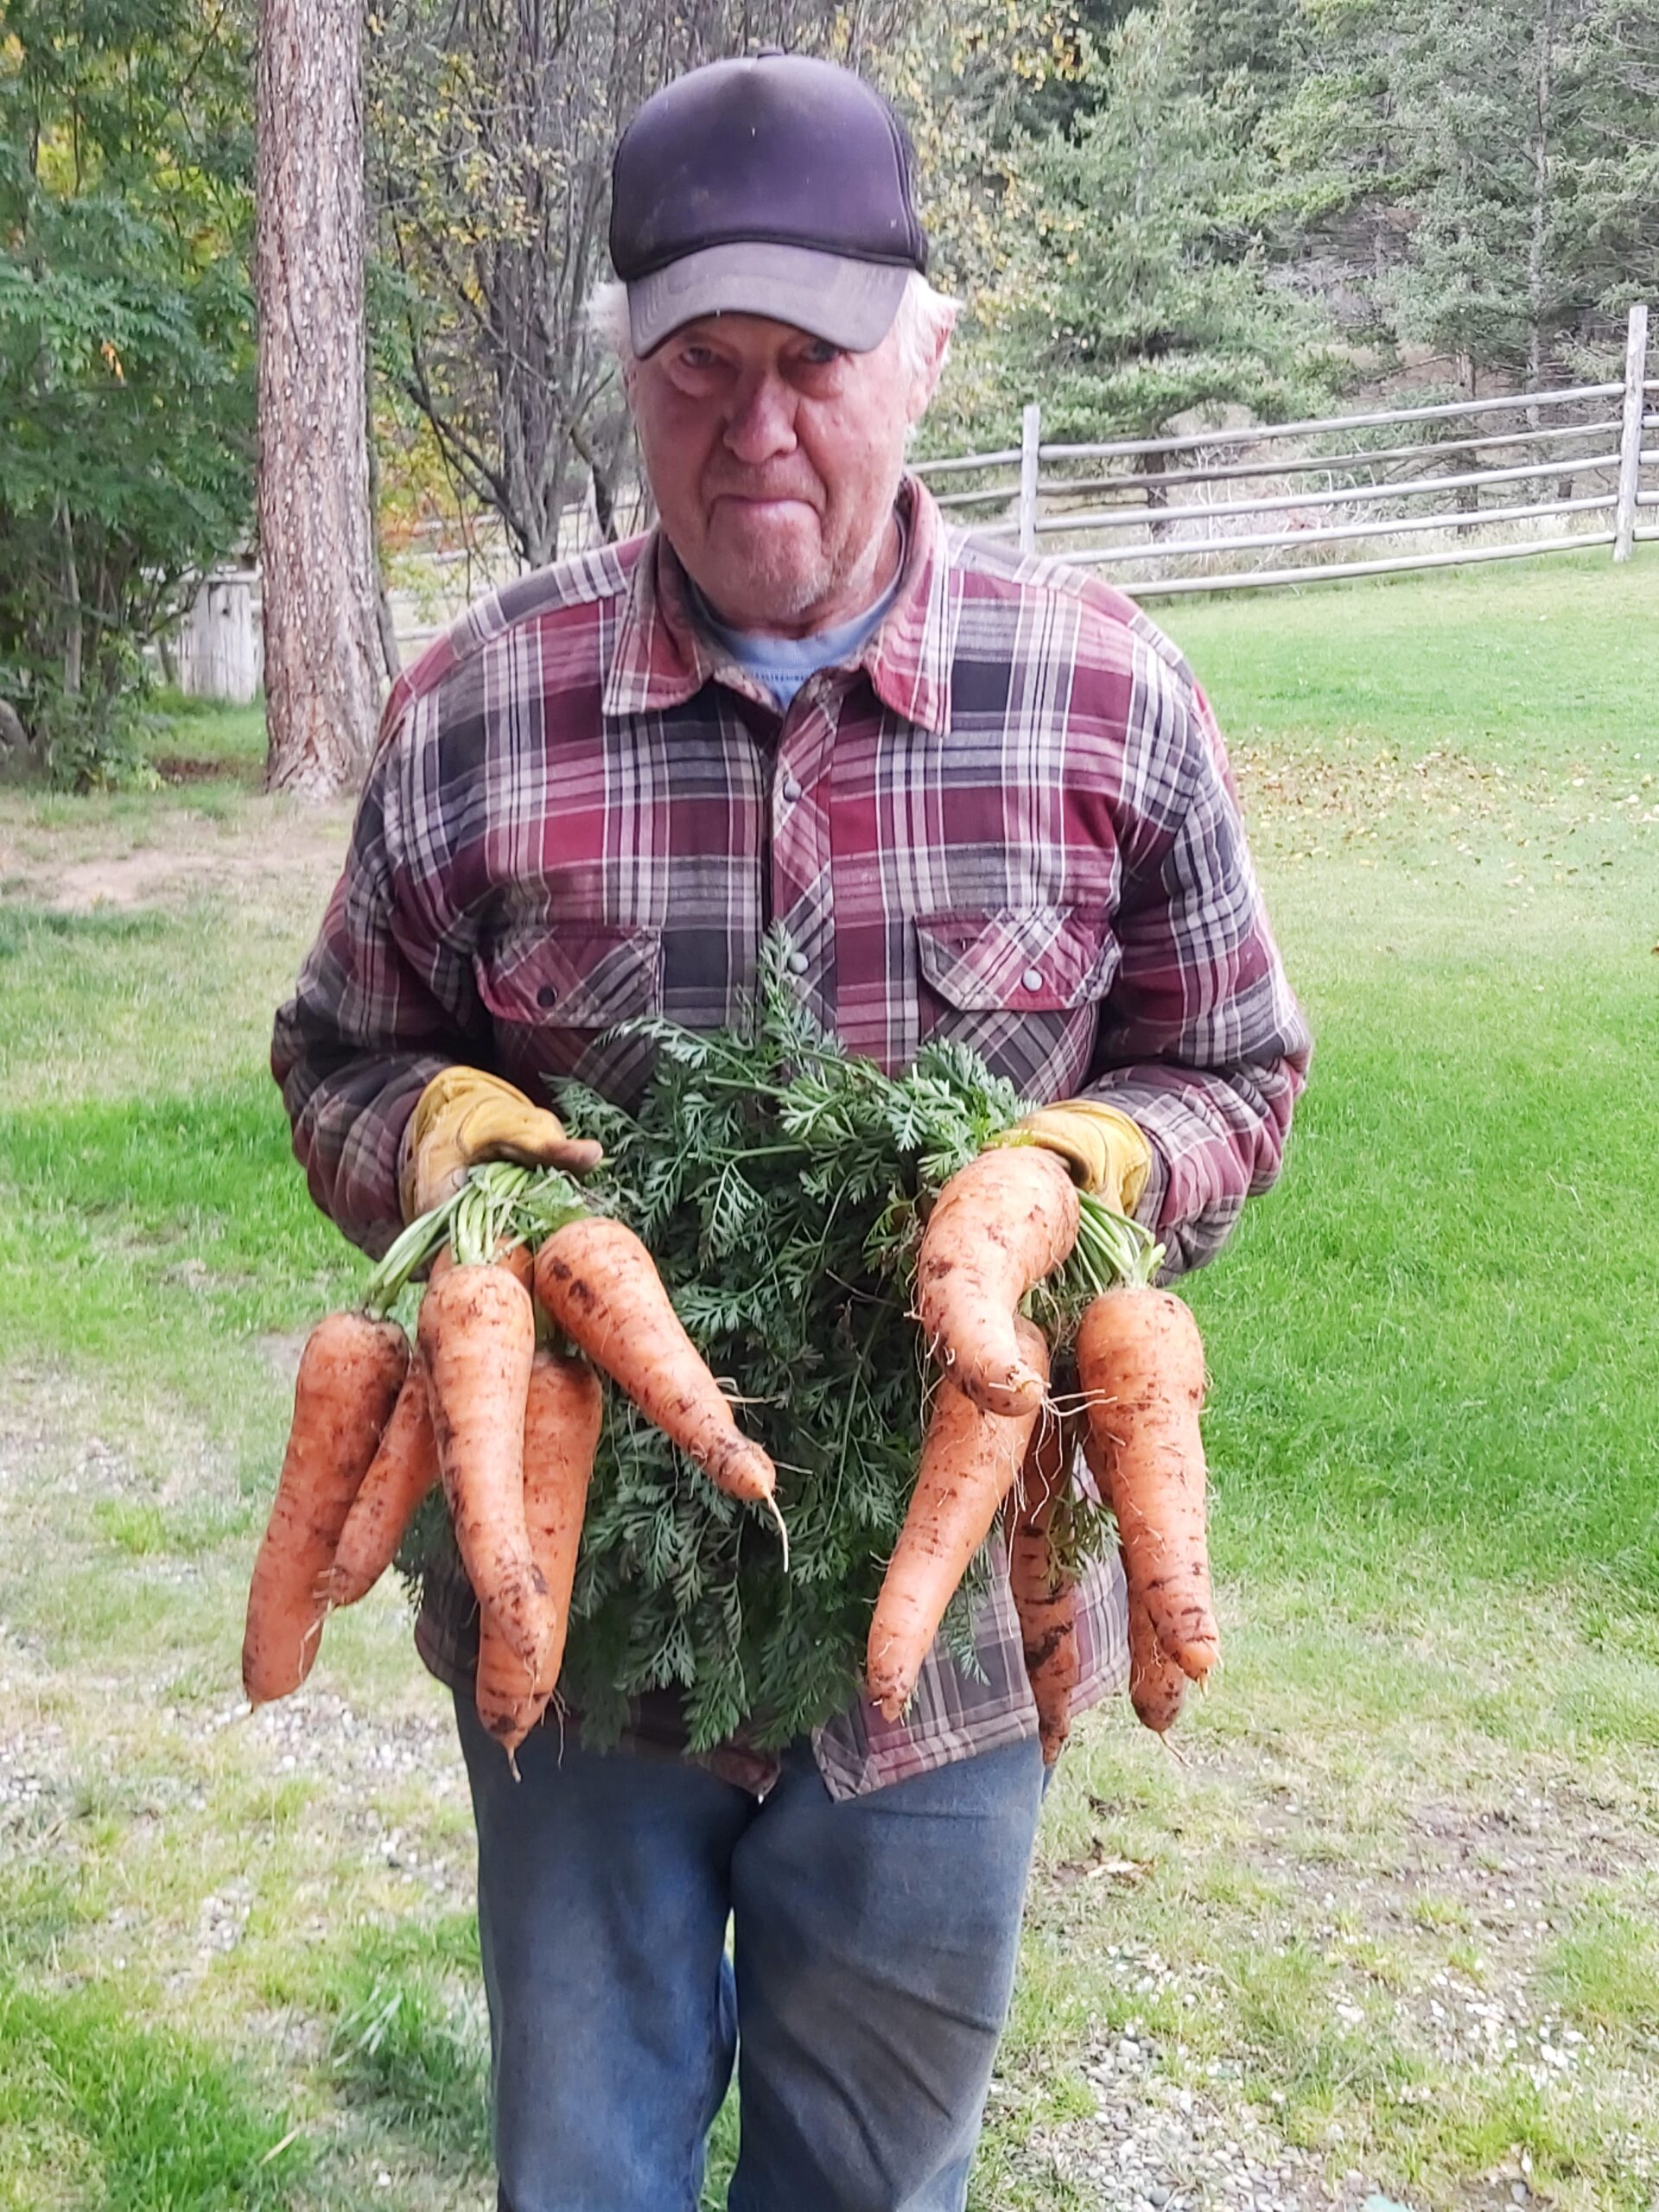 A man holding two handfuls of huge carrots